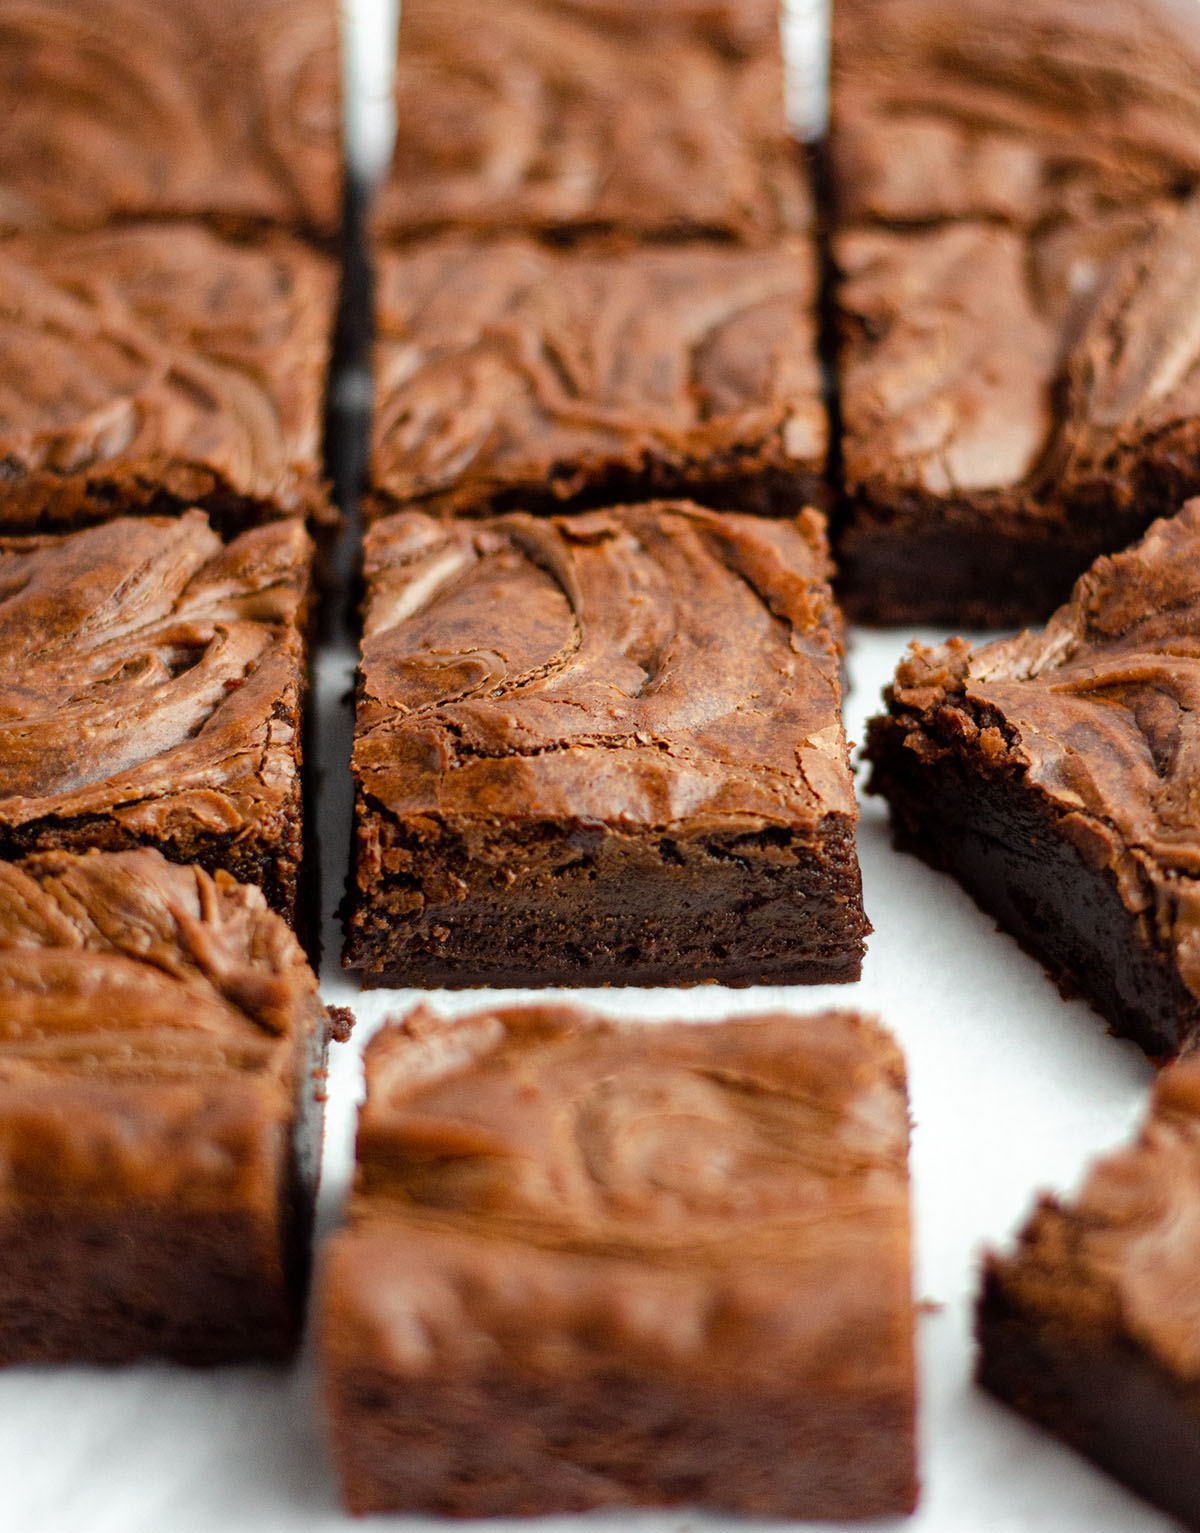 Fudgy Nutella Brownies: These seriously dense and fudgy Nutella brownies have Nutella blended right in the batter and swirled into the top. They are a chocolate lovers' dream!